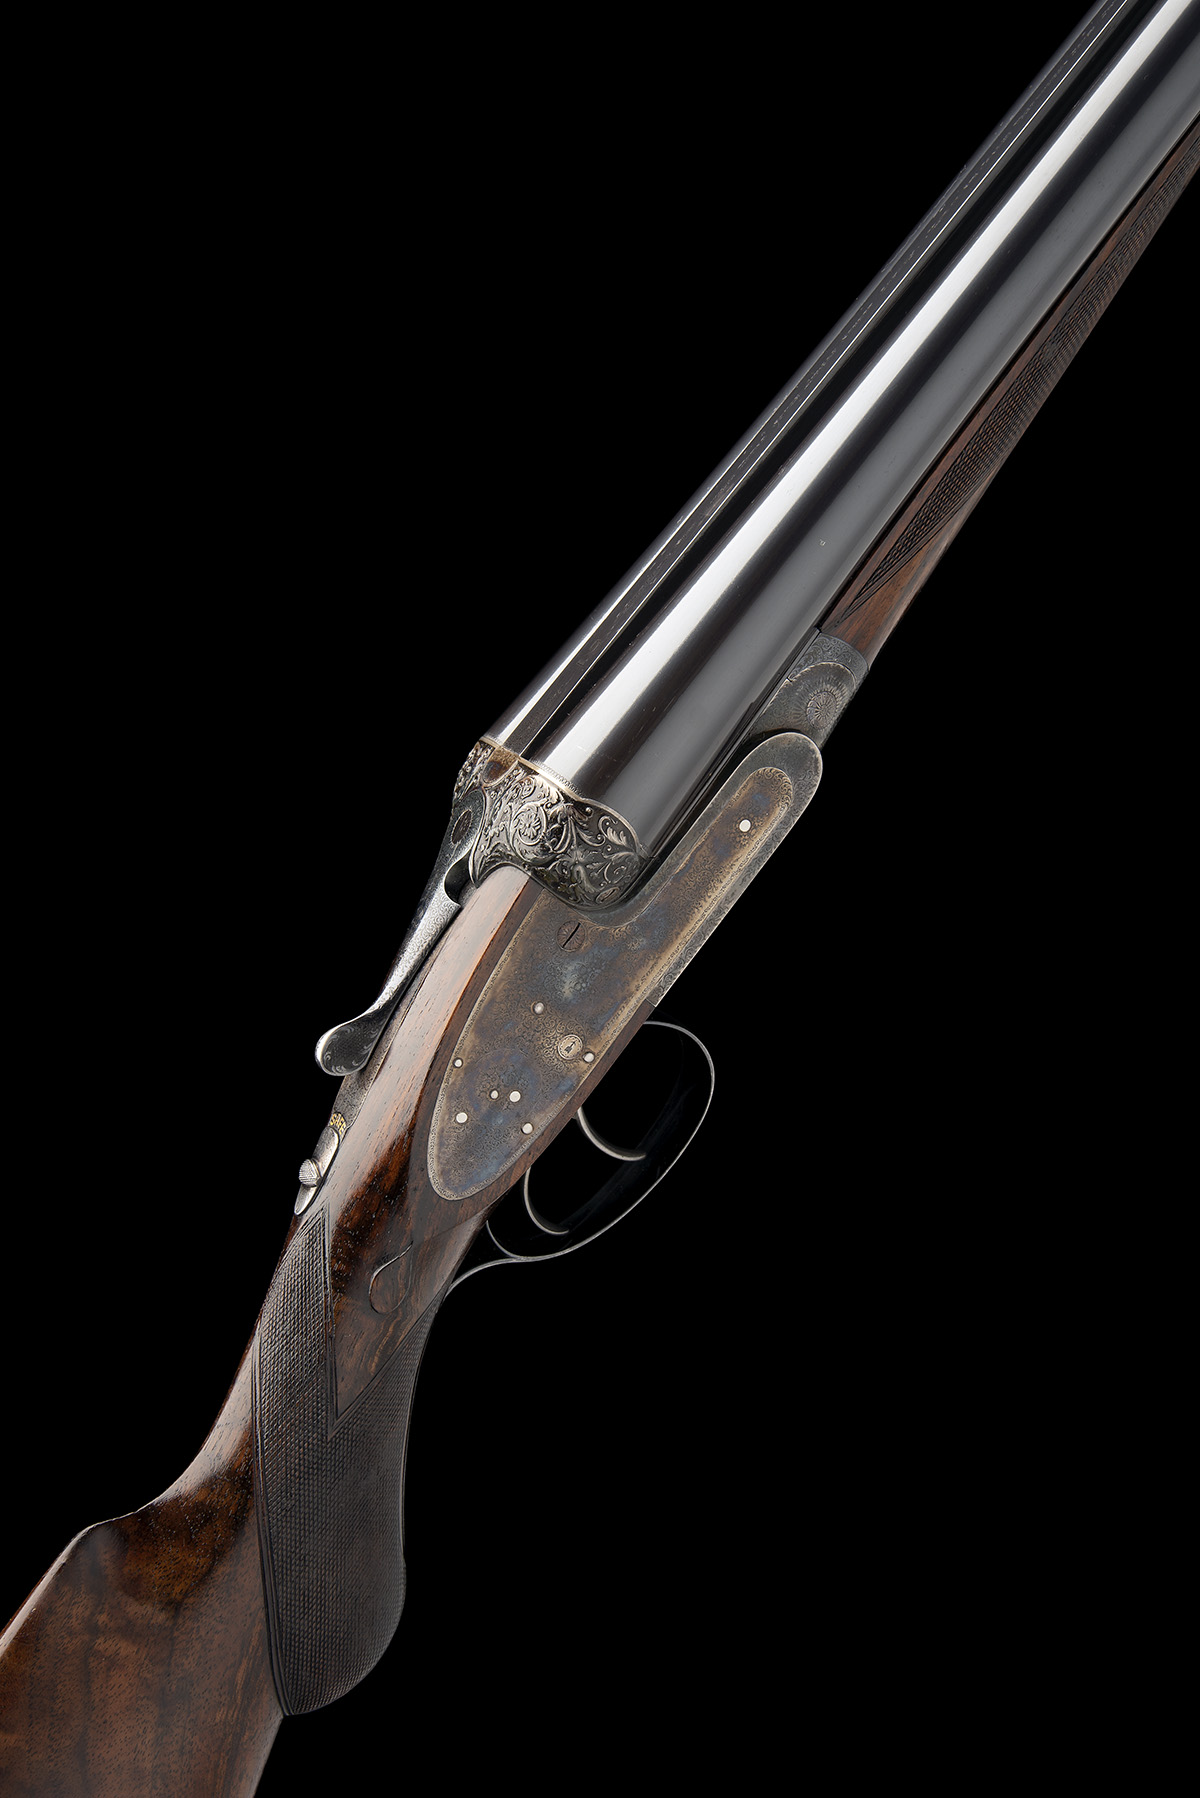 J. PURDEY & SONS A FINE 12-BORE (3IN.) SELF-OPENING SIDELOCK EJECTOR WILDFOWLING GUN, serial no.